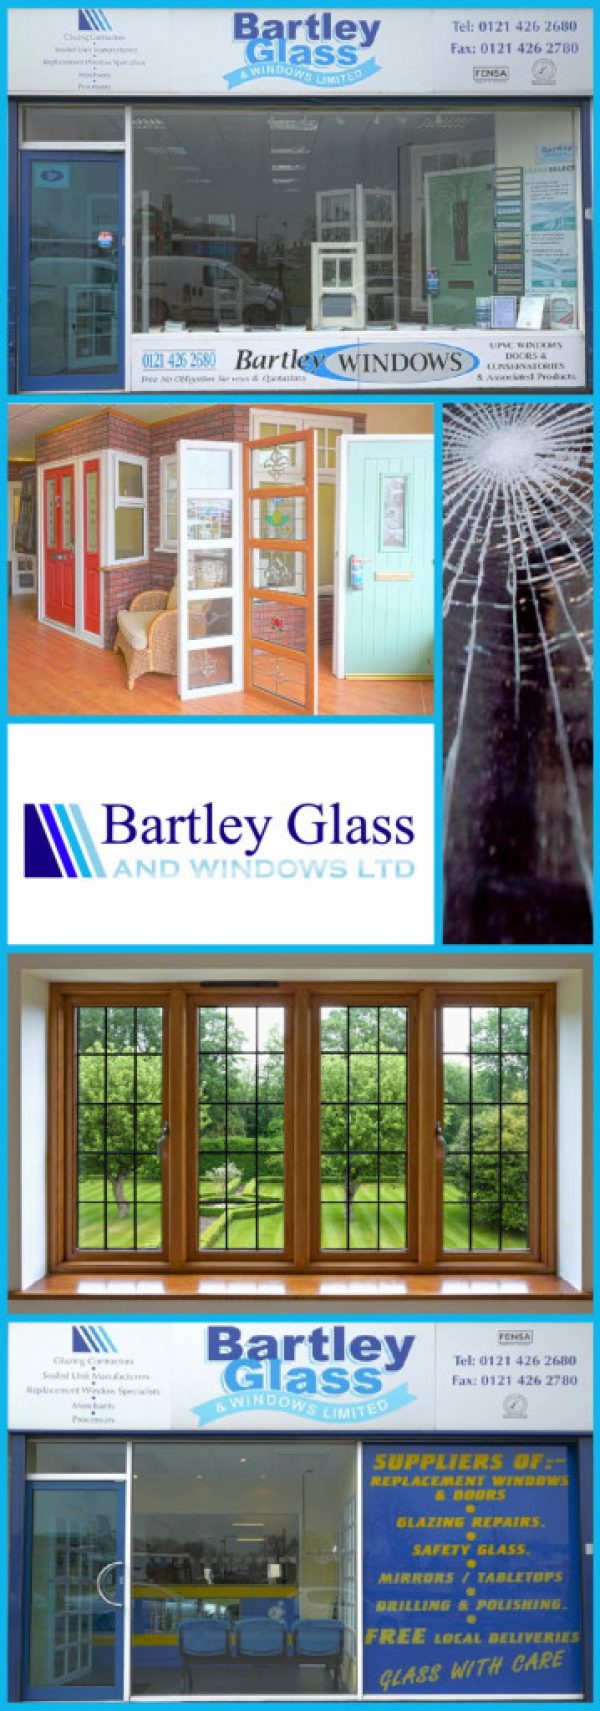 bartley-glass-glaziers-birmingham